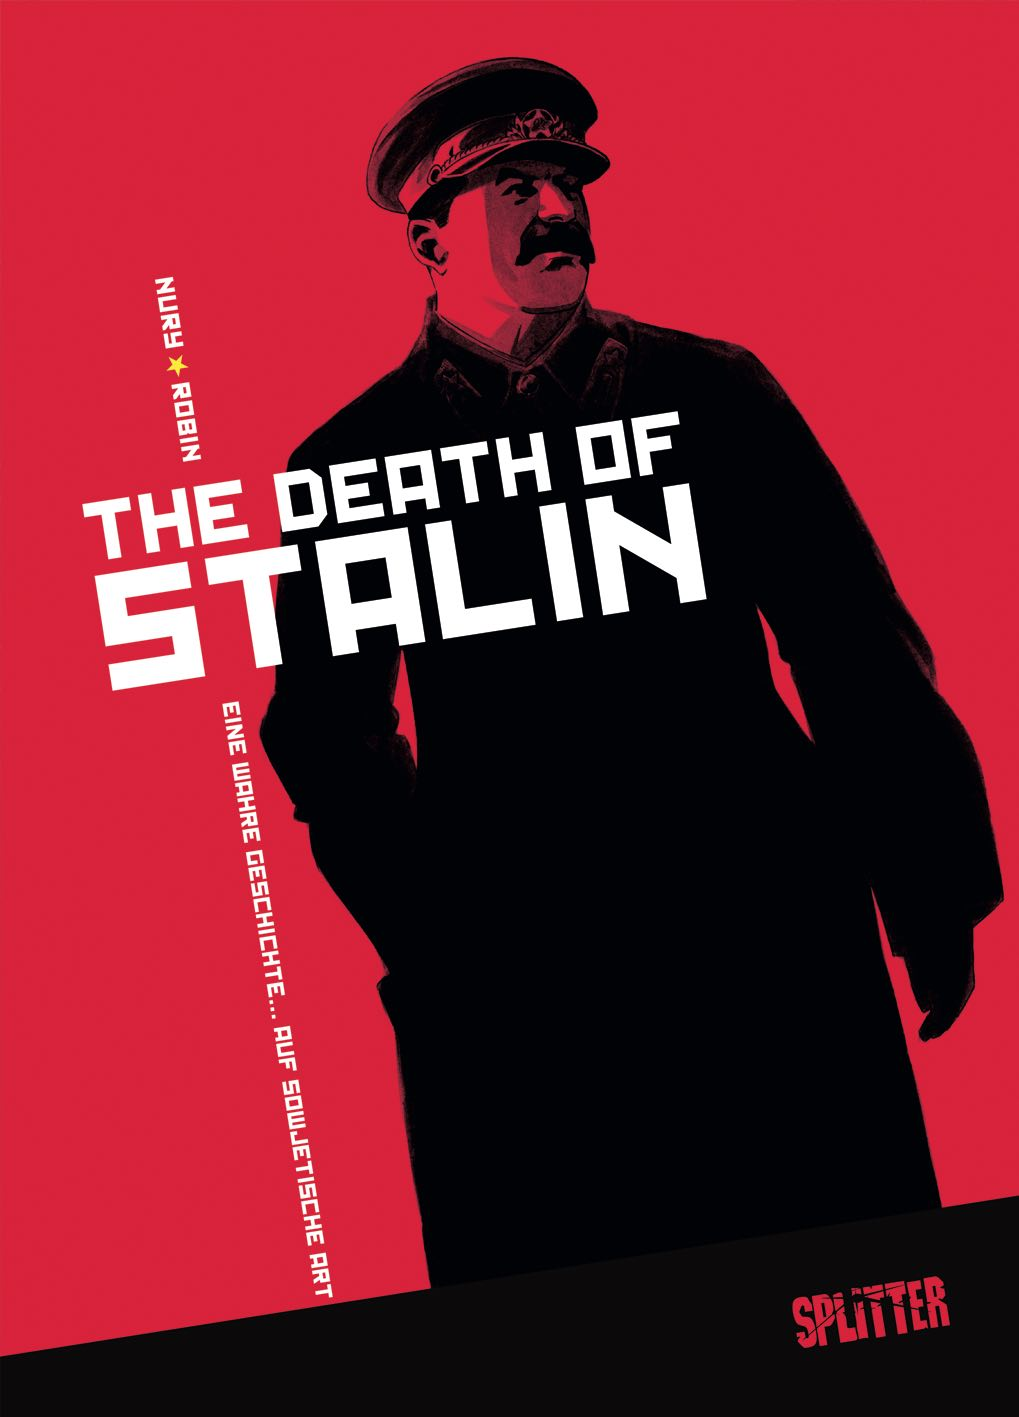 Stalin_Death_of_cover